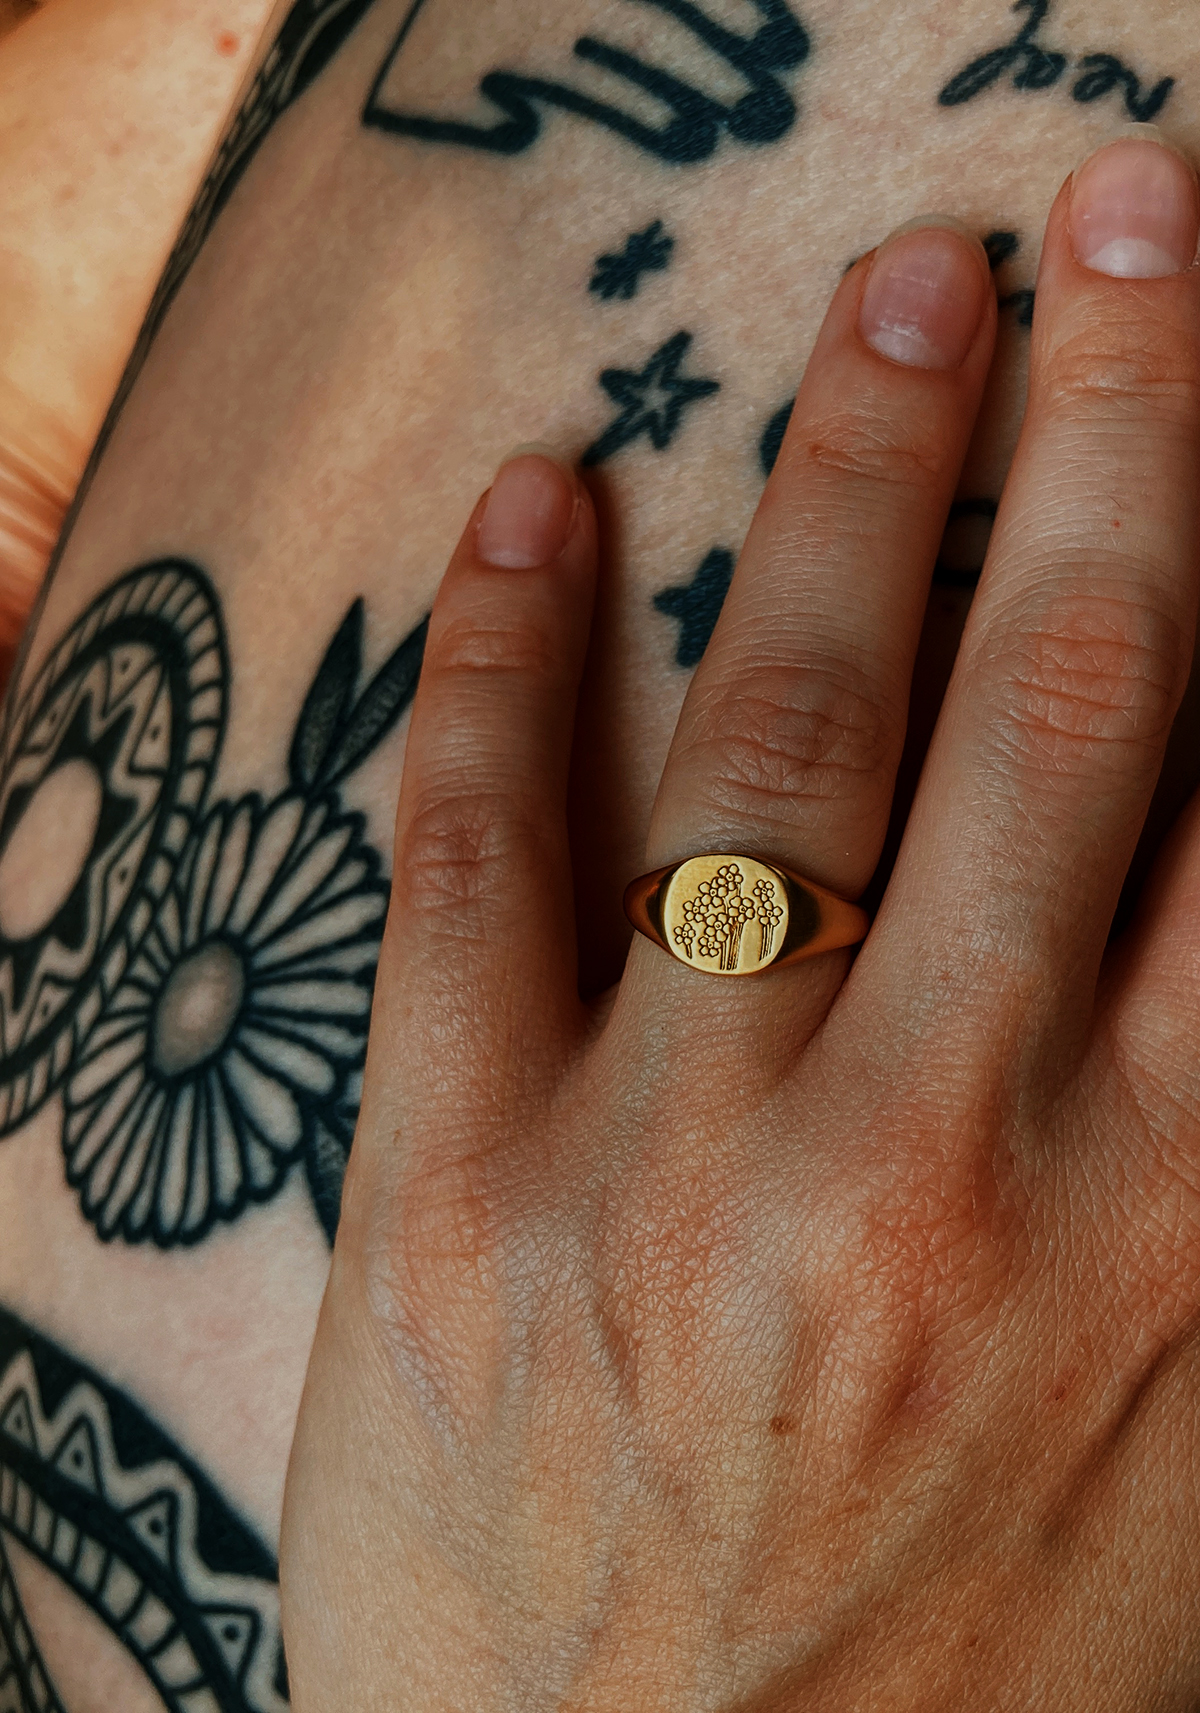 Close up of hand wearing Daisy forget me not signet ring, with tattooed legs in the background